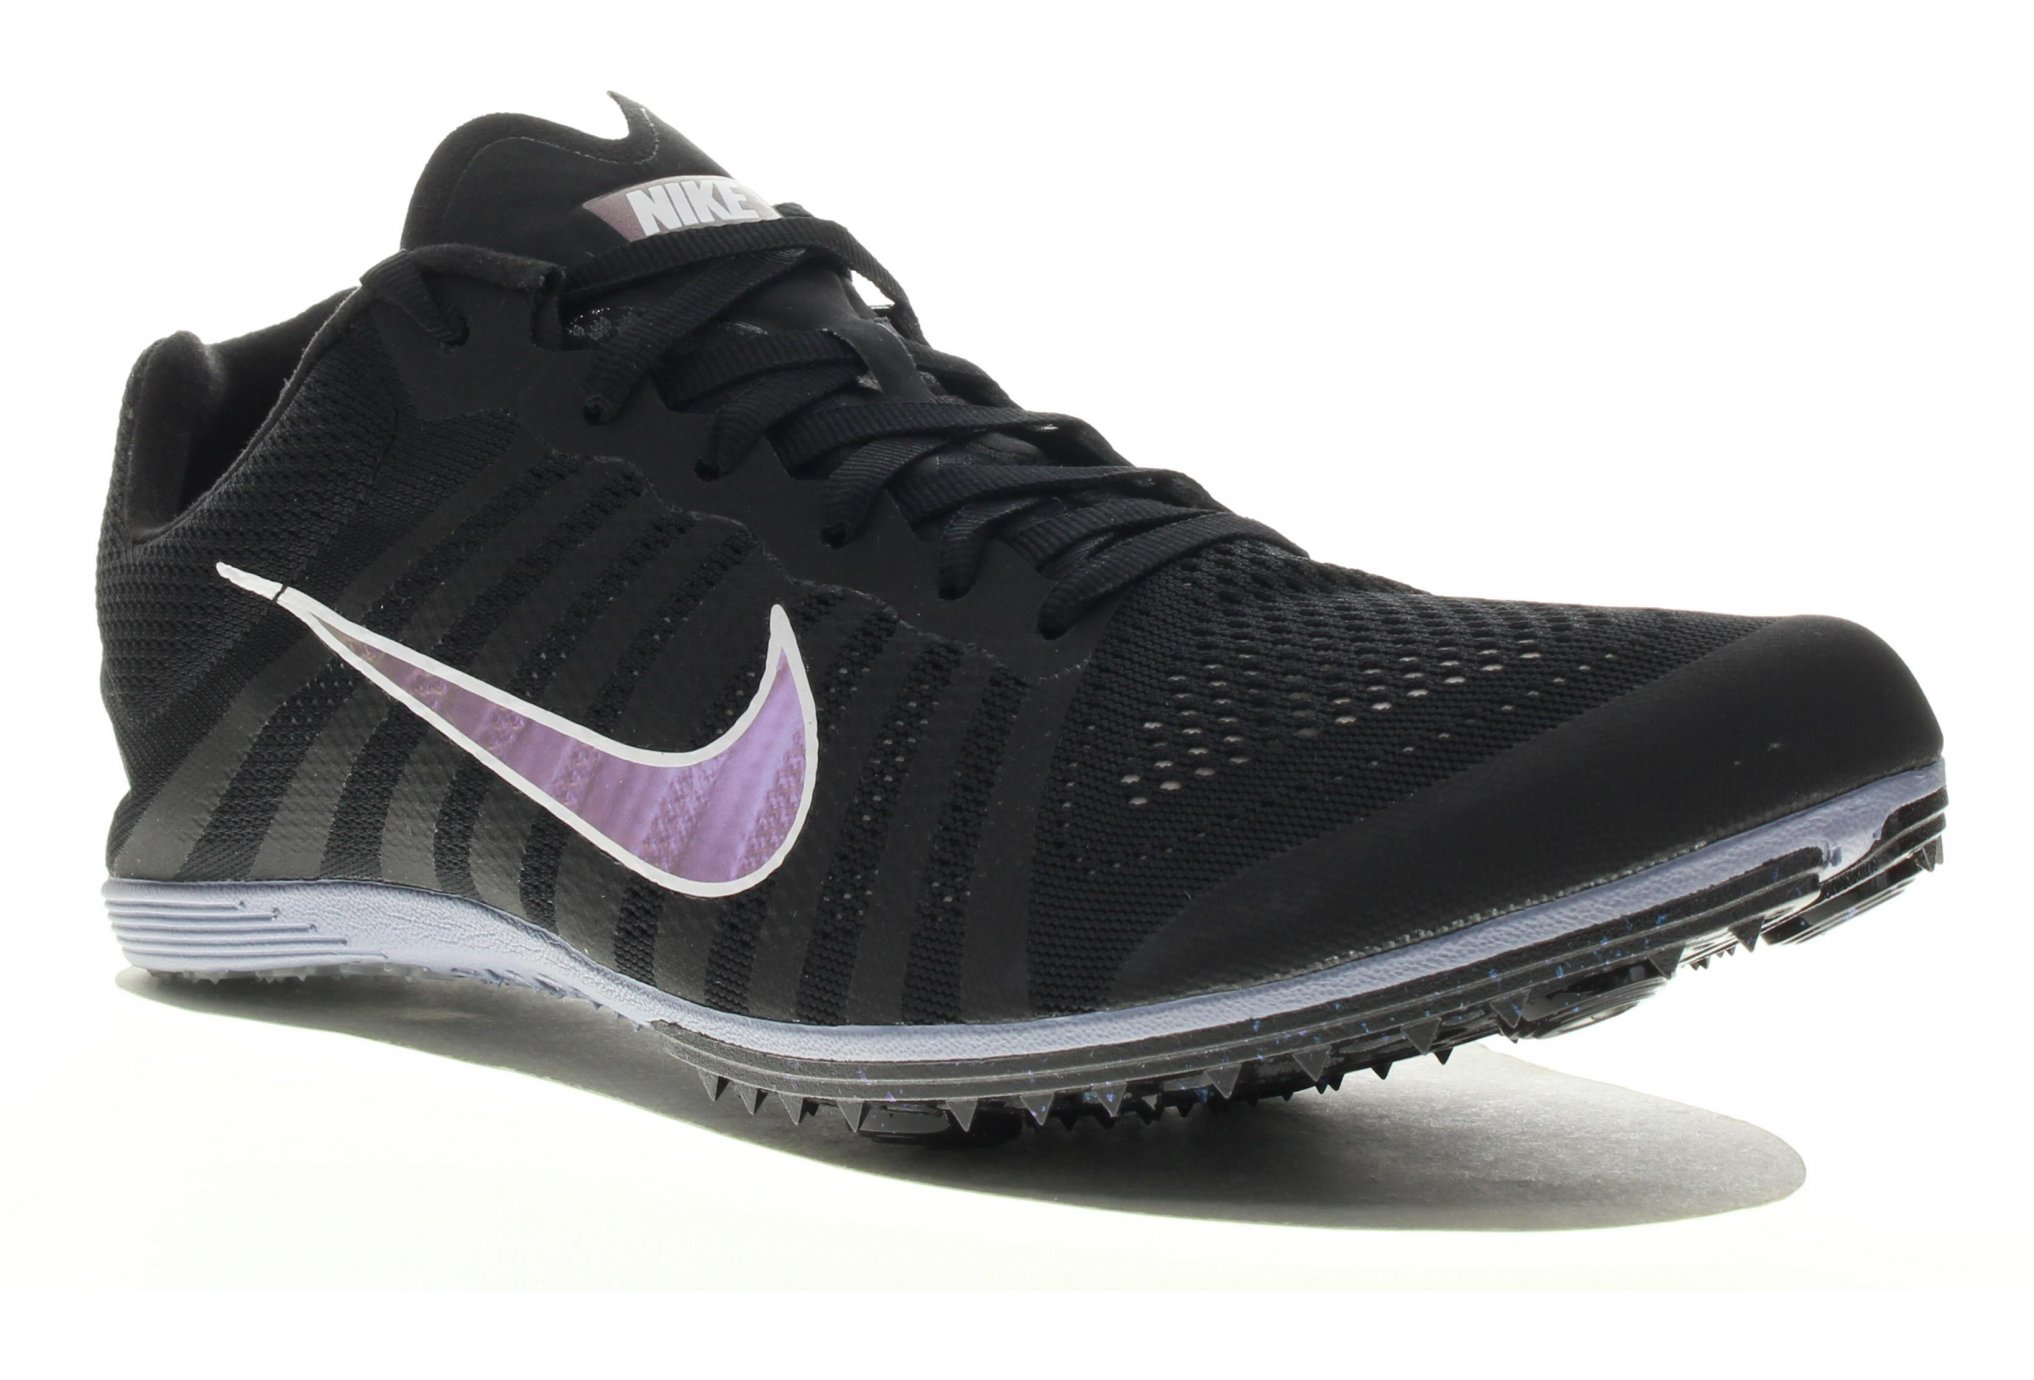 Nike Zoom D M Chaussures homme